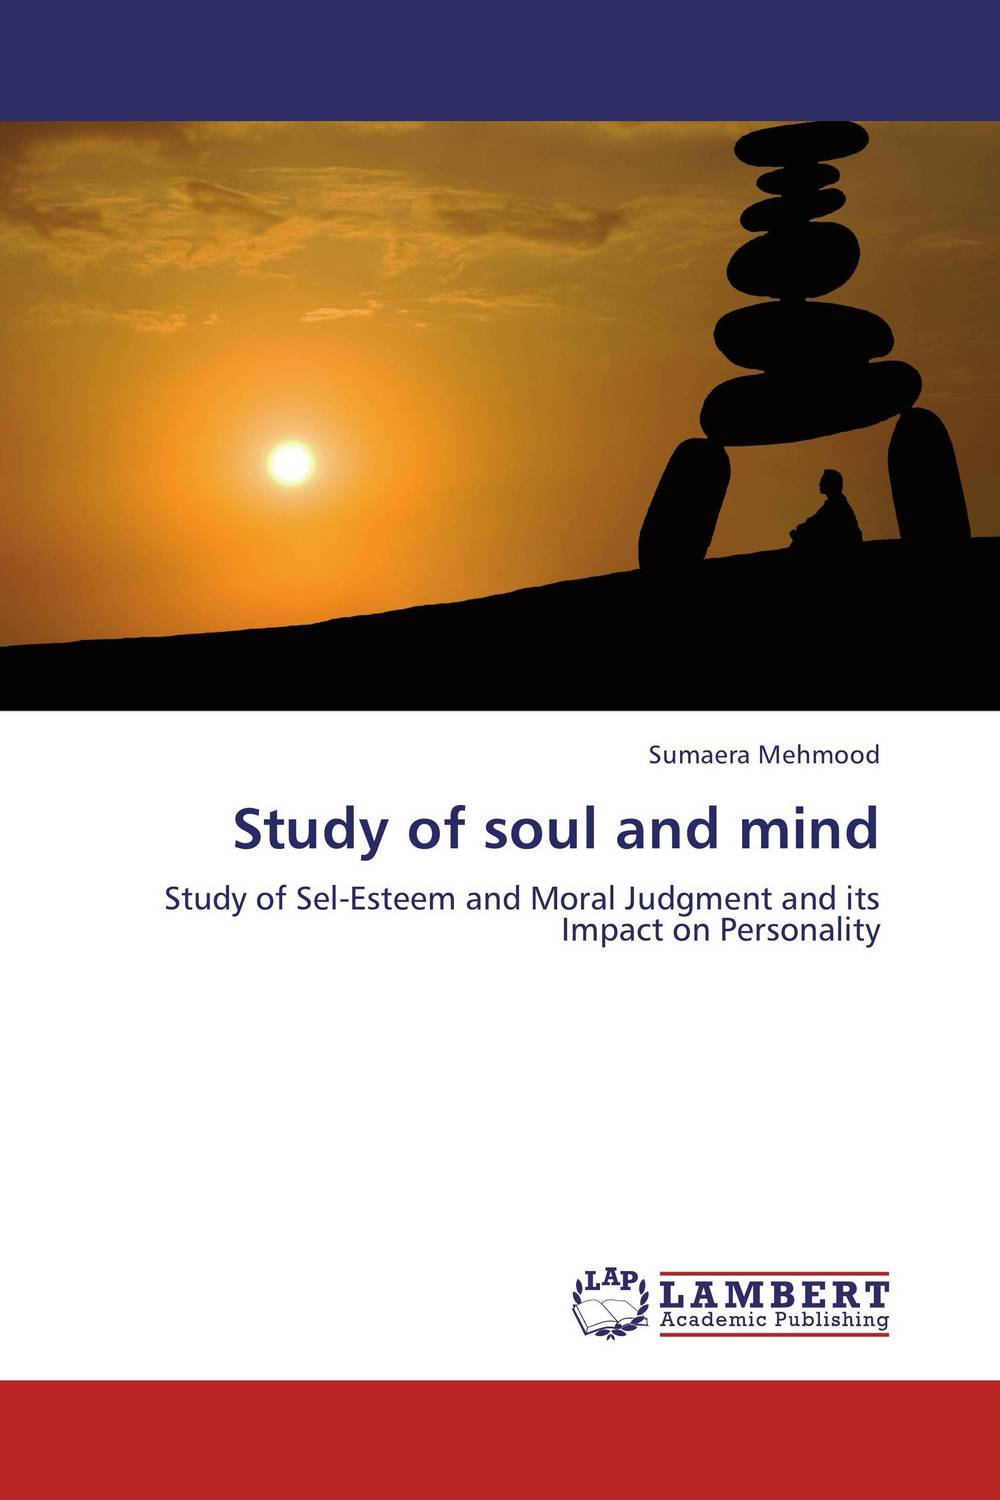 Study of soul and mind self esteem deficit suicidal tendencies and social support